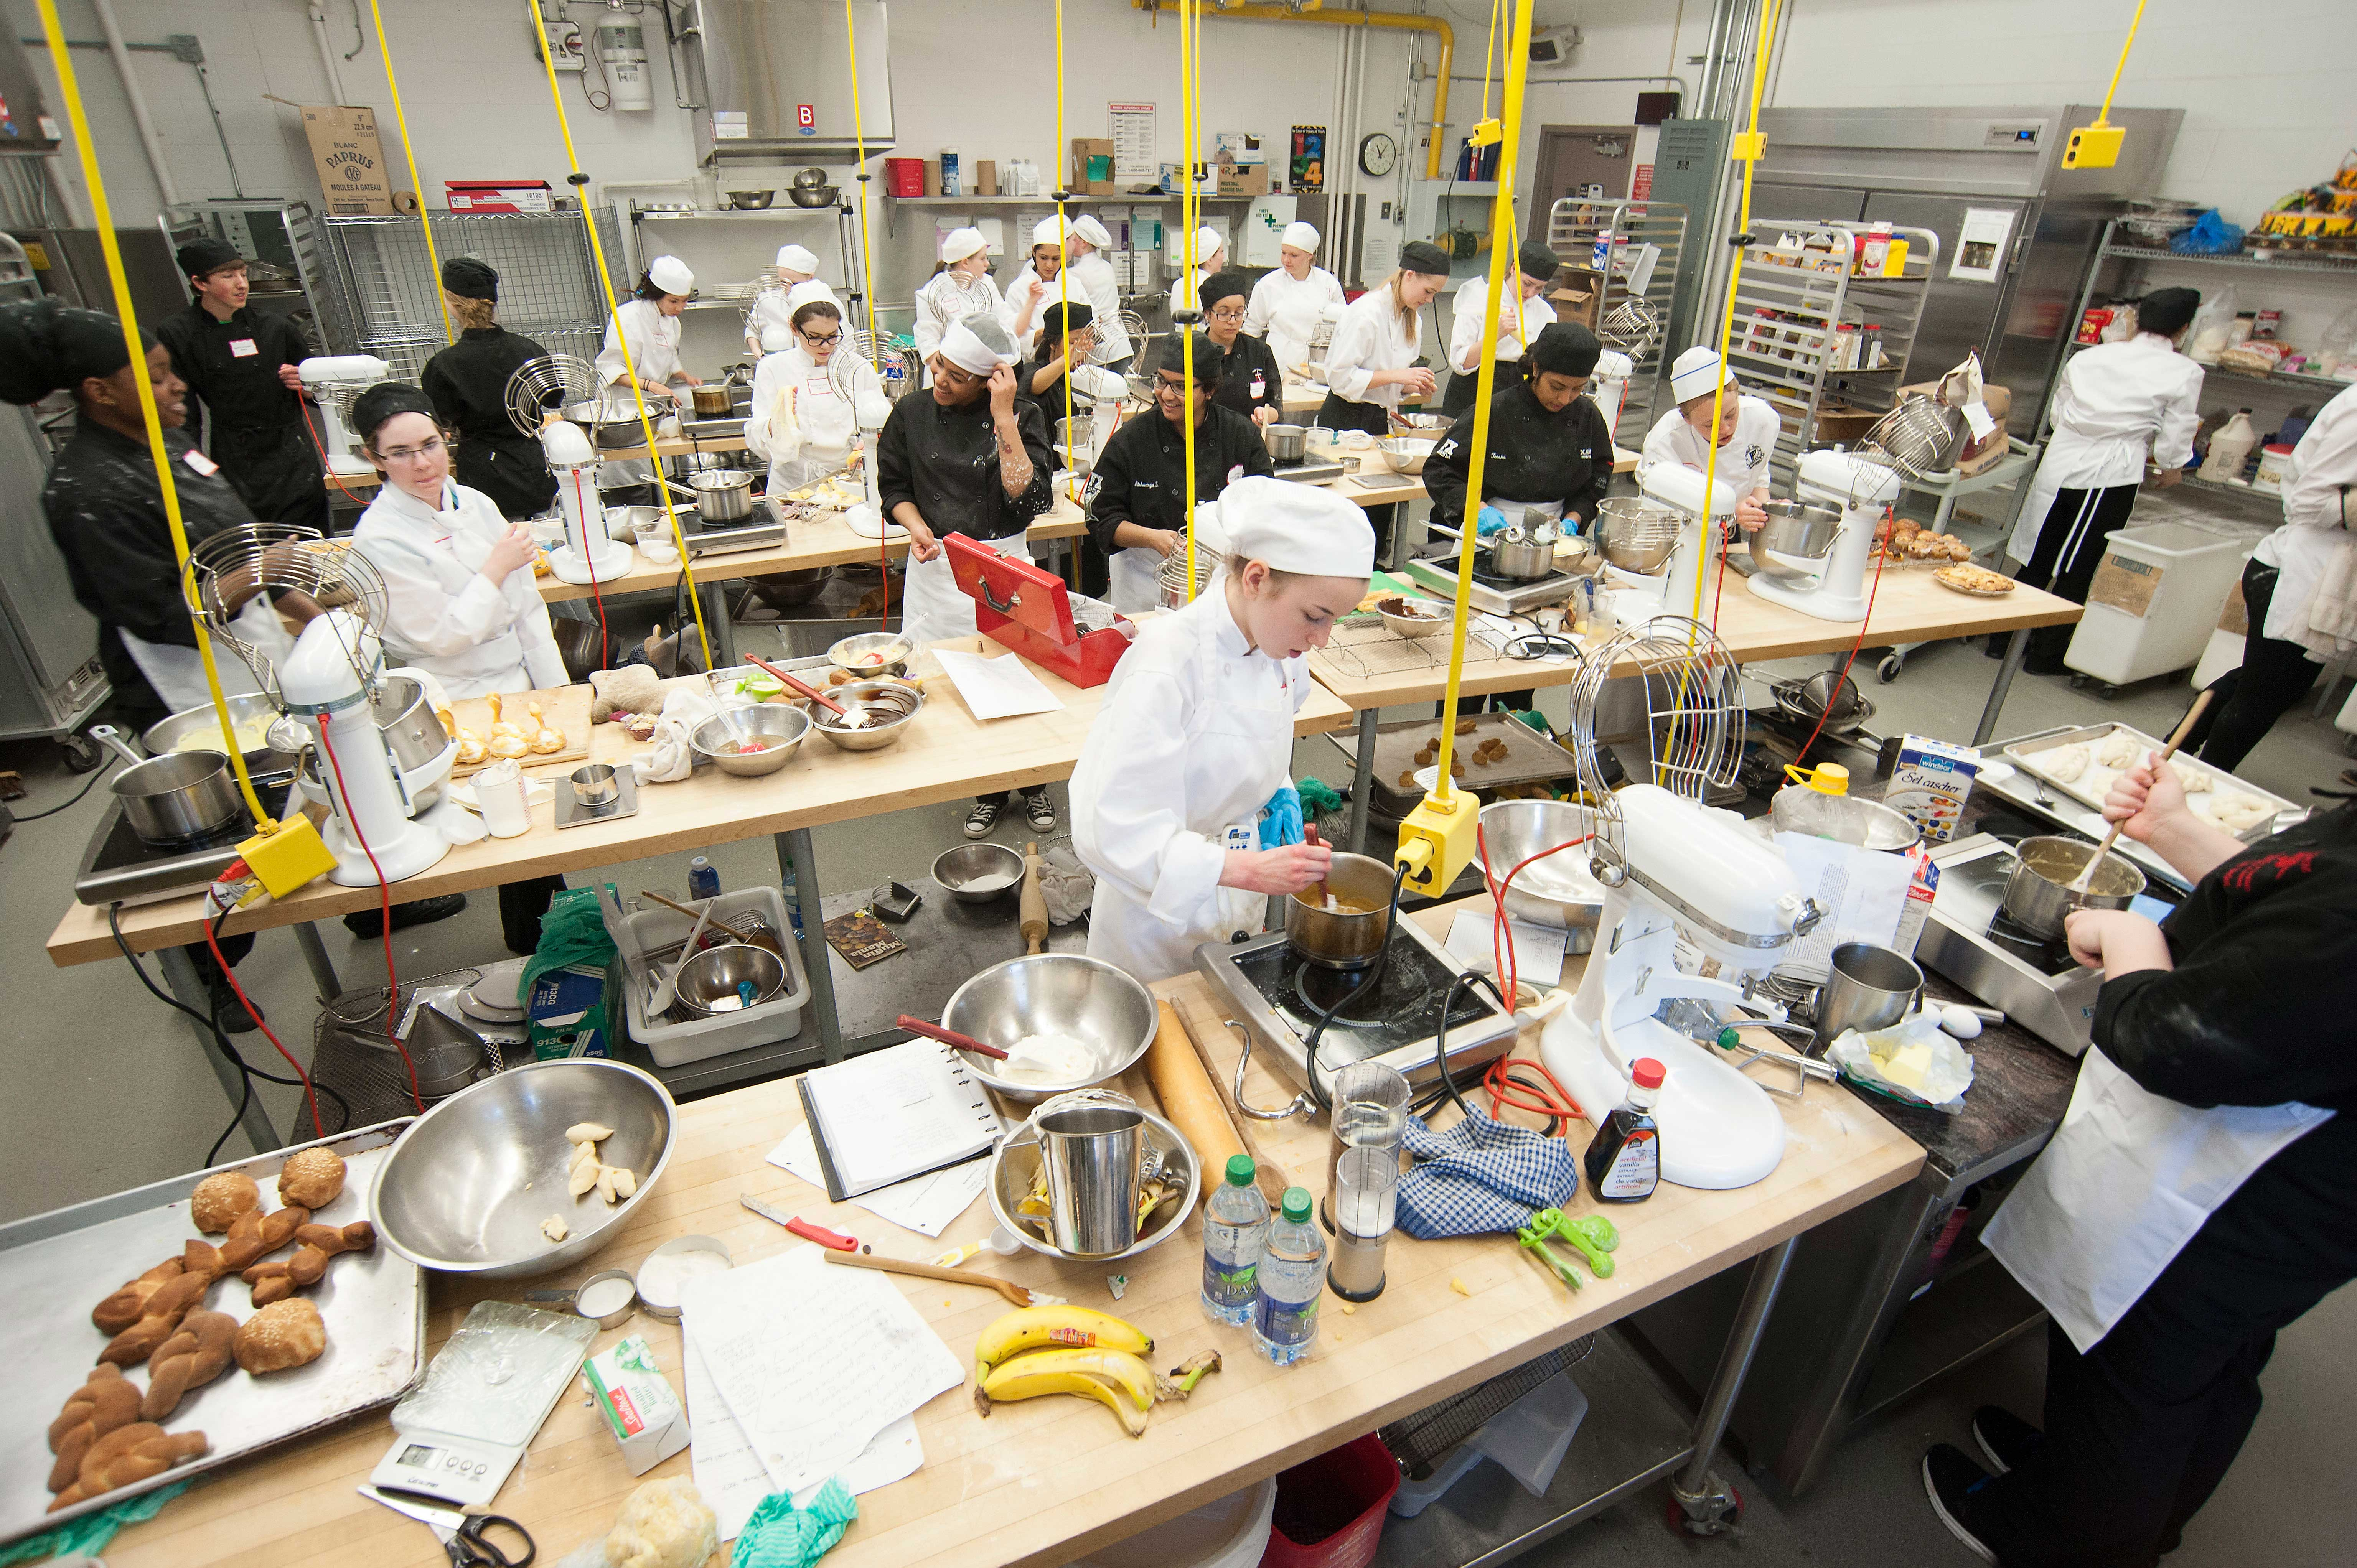 High School Students Cook Up A Storm In Culinary